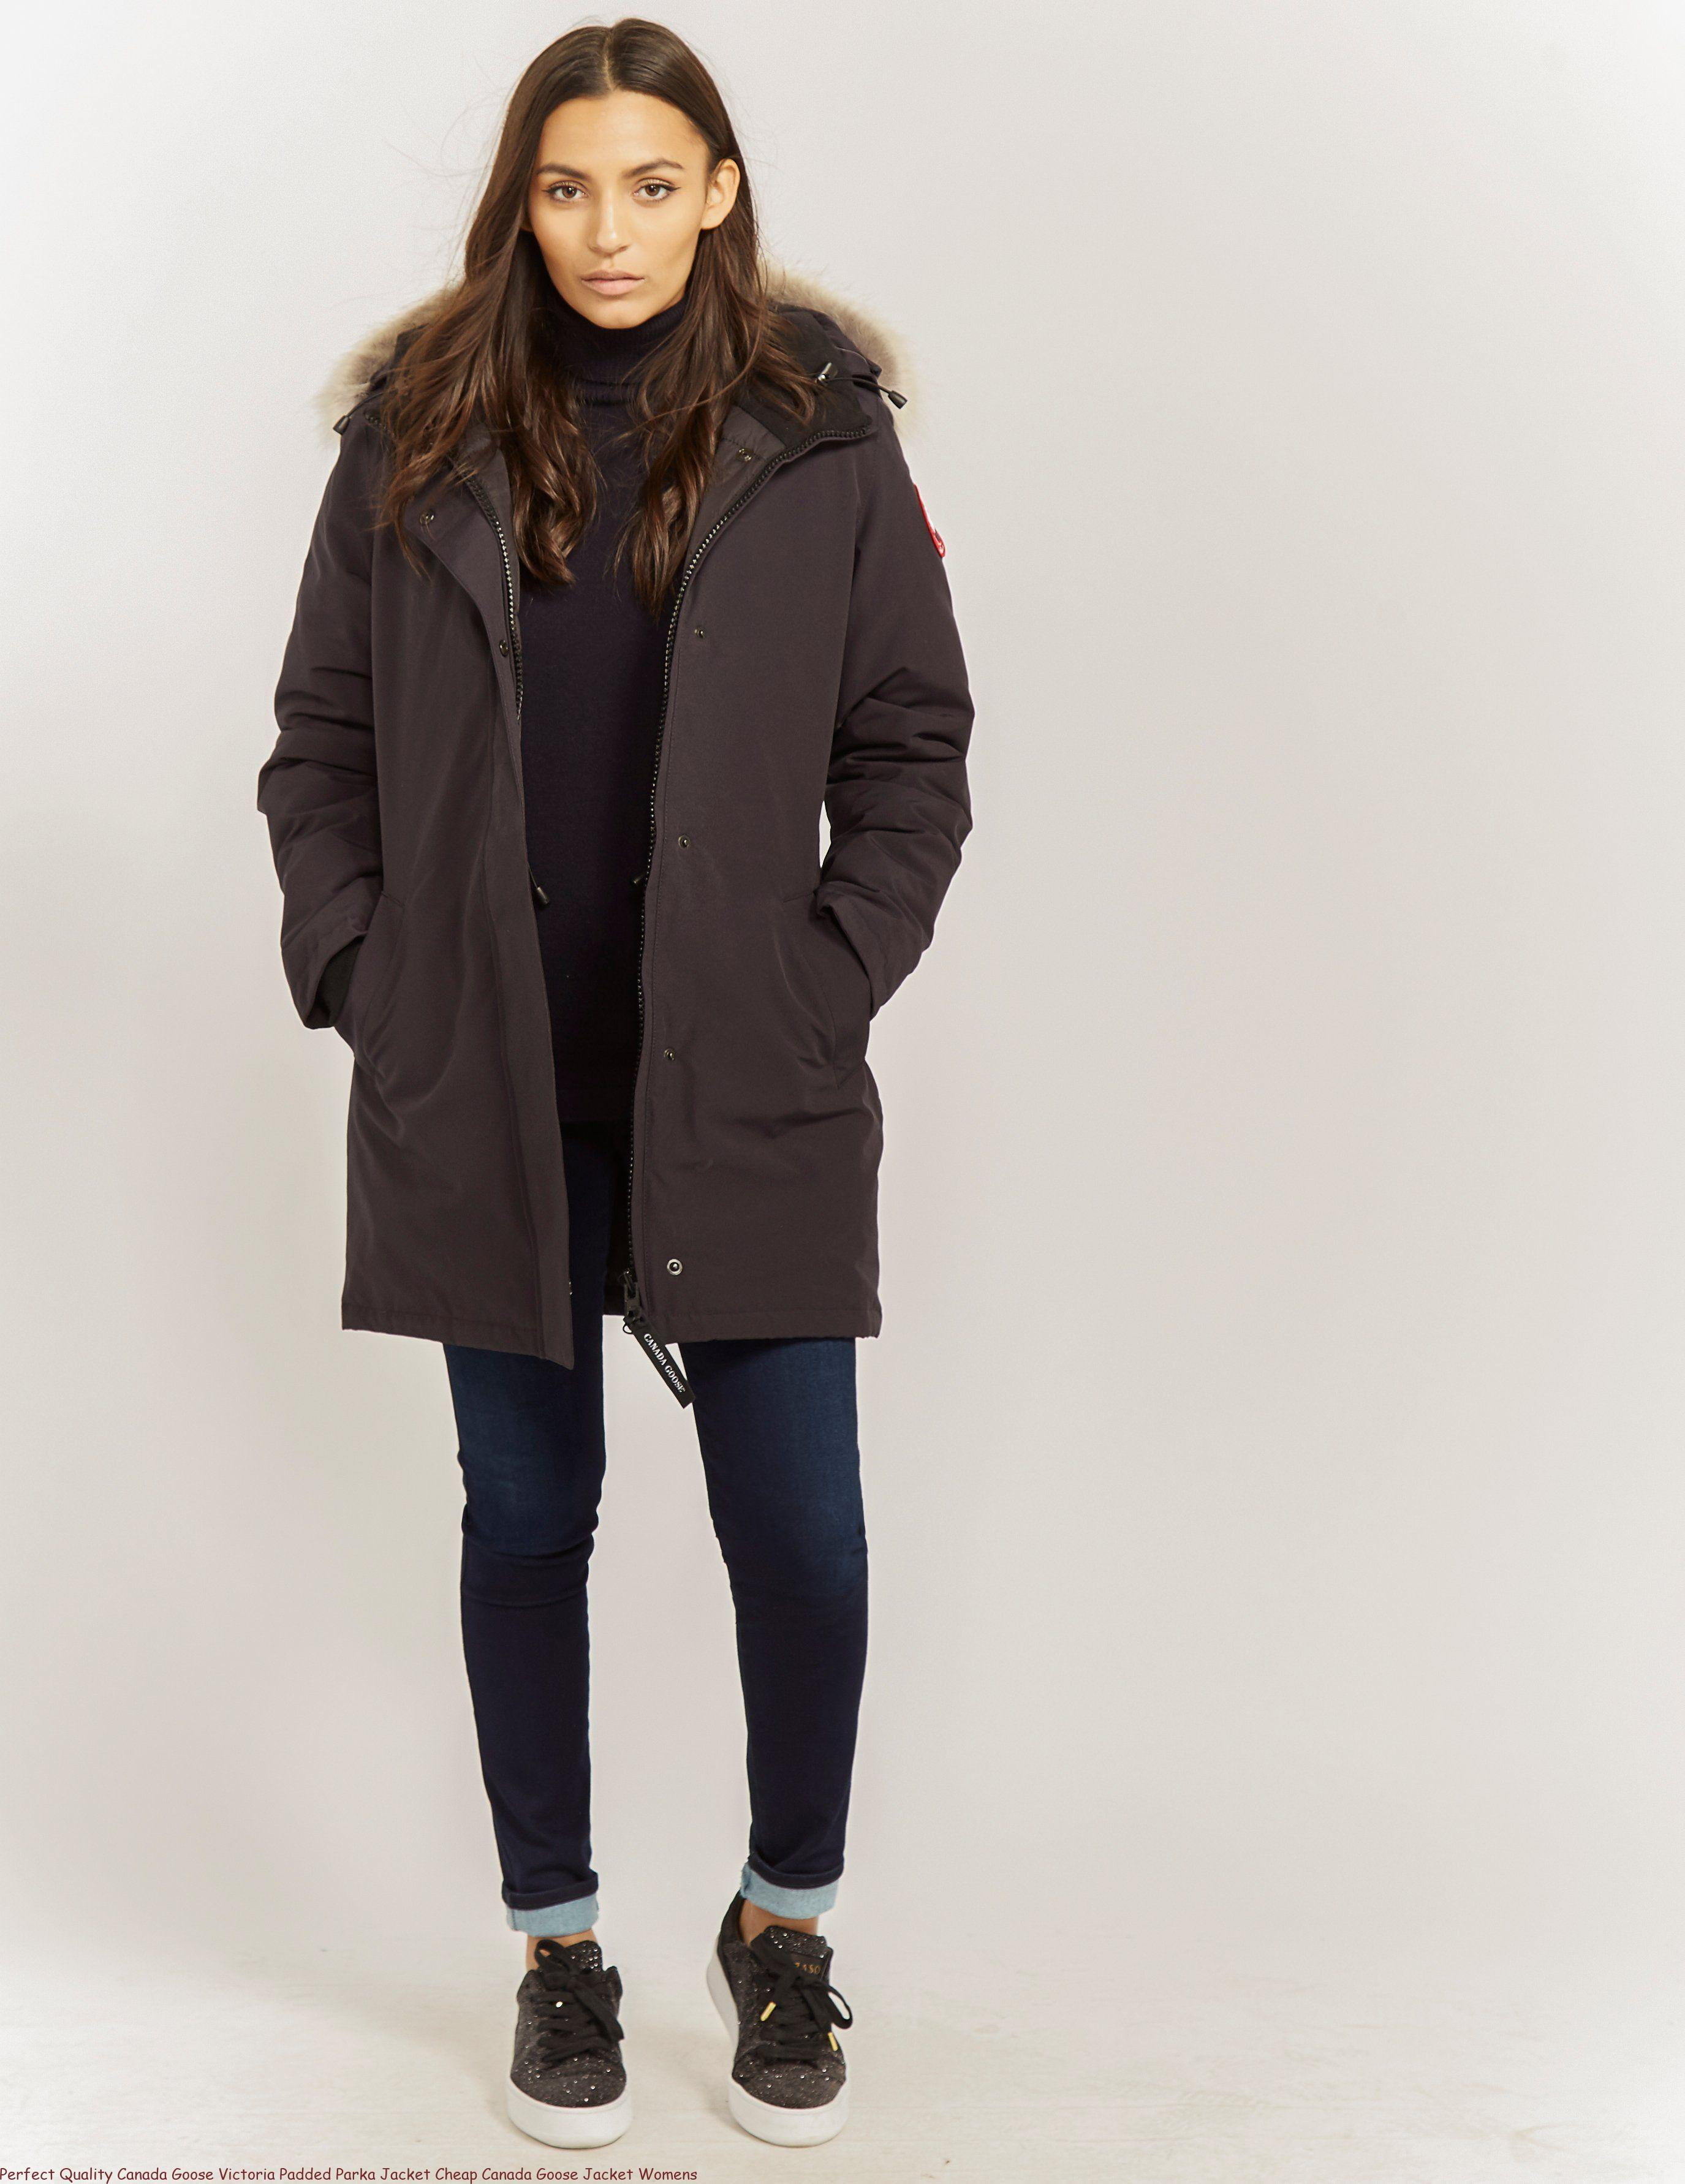 canada goose factory outlet toronto location